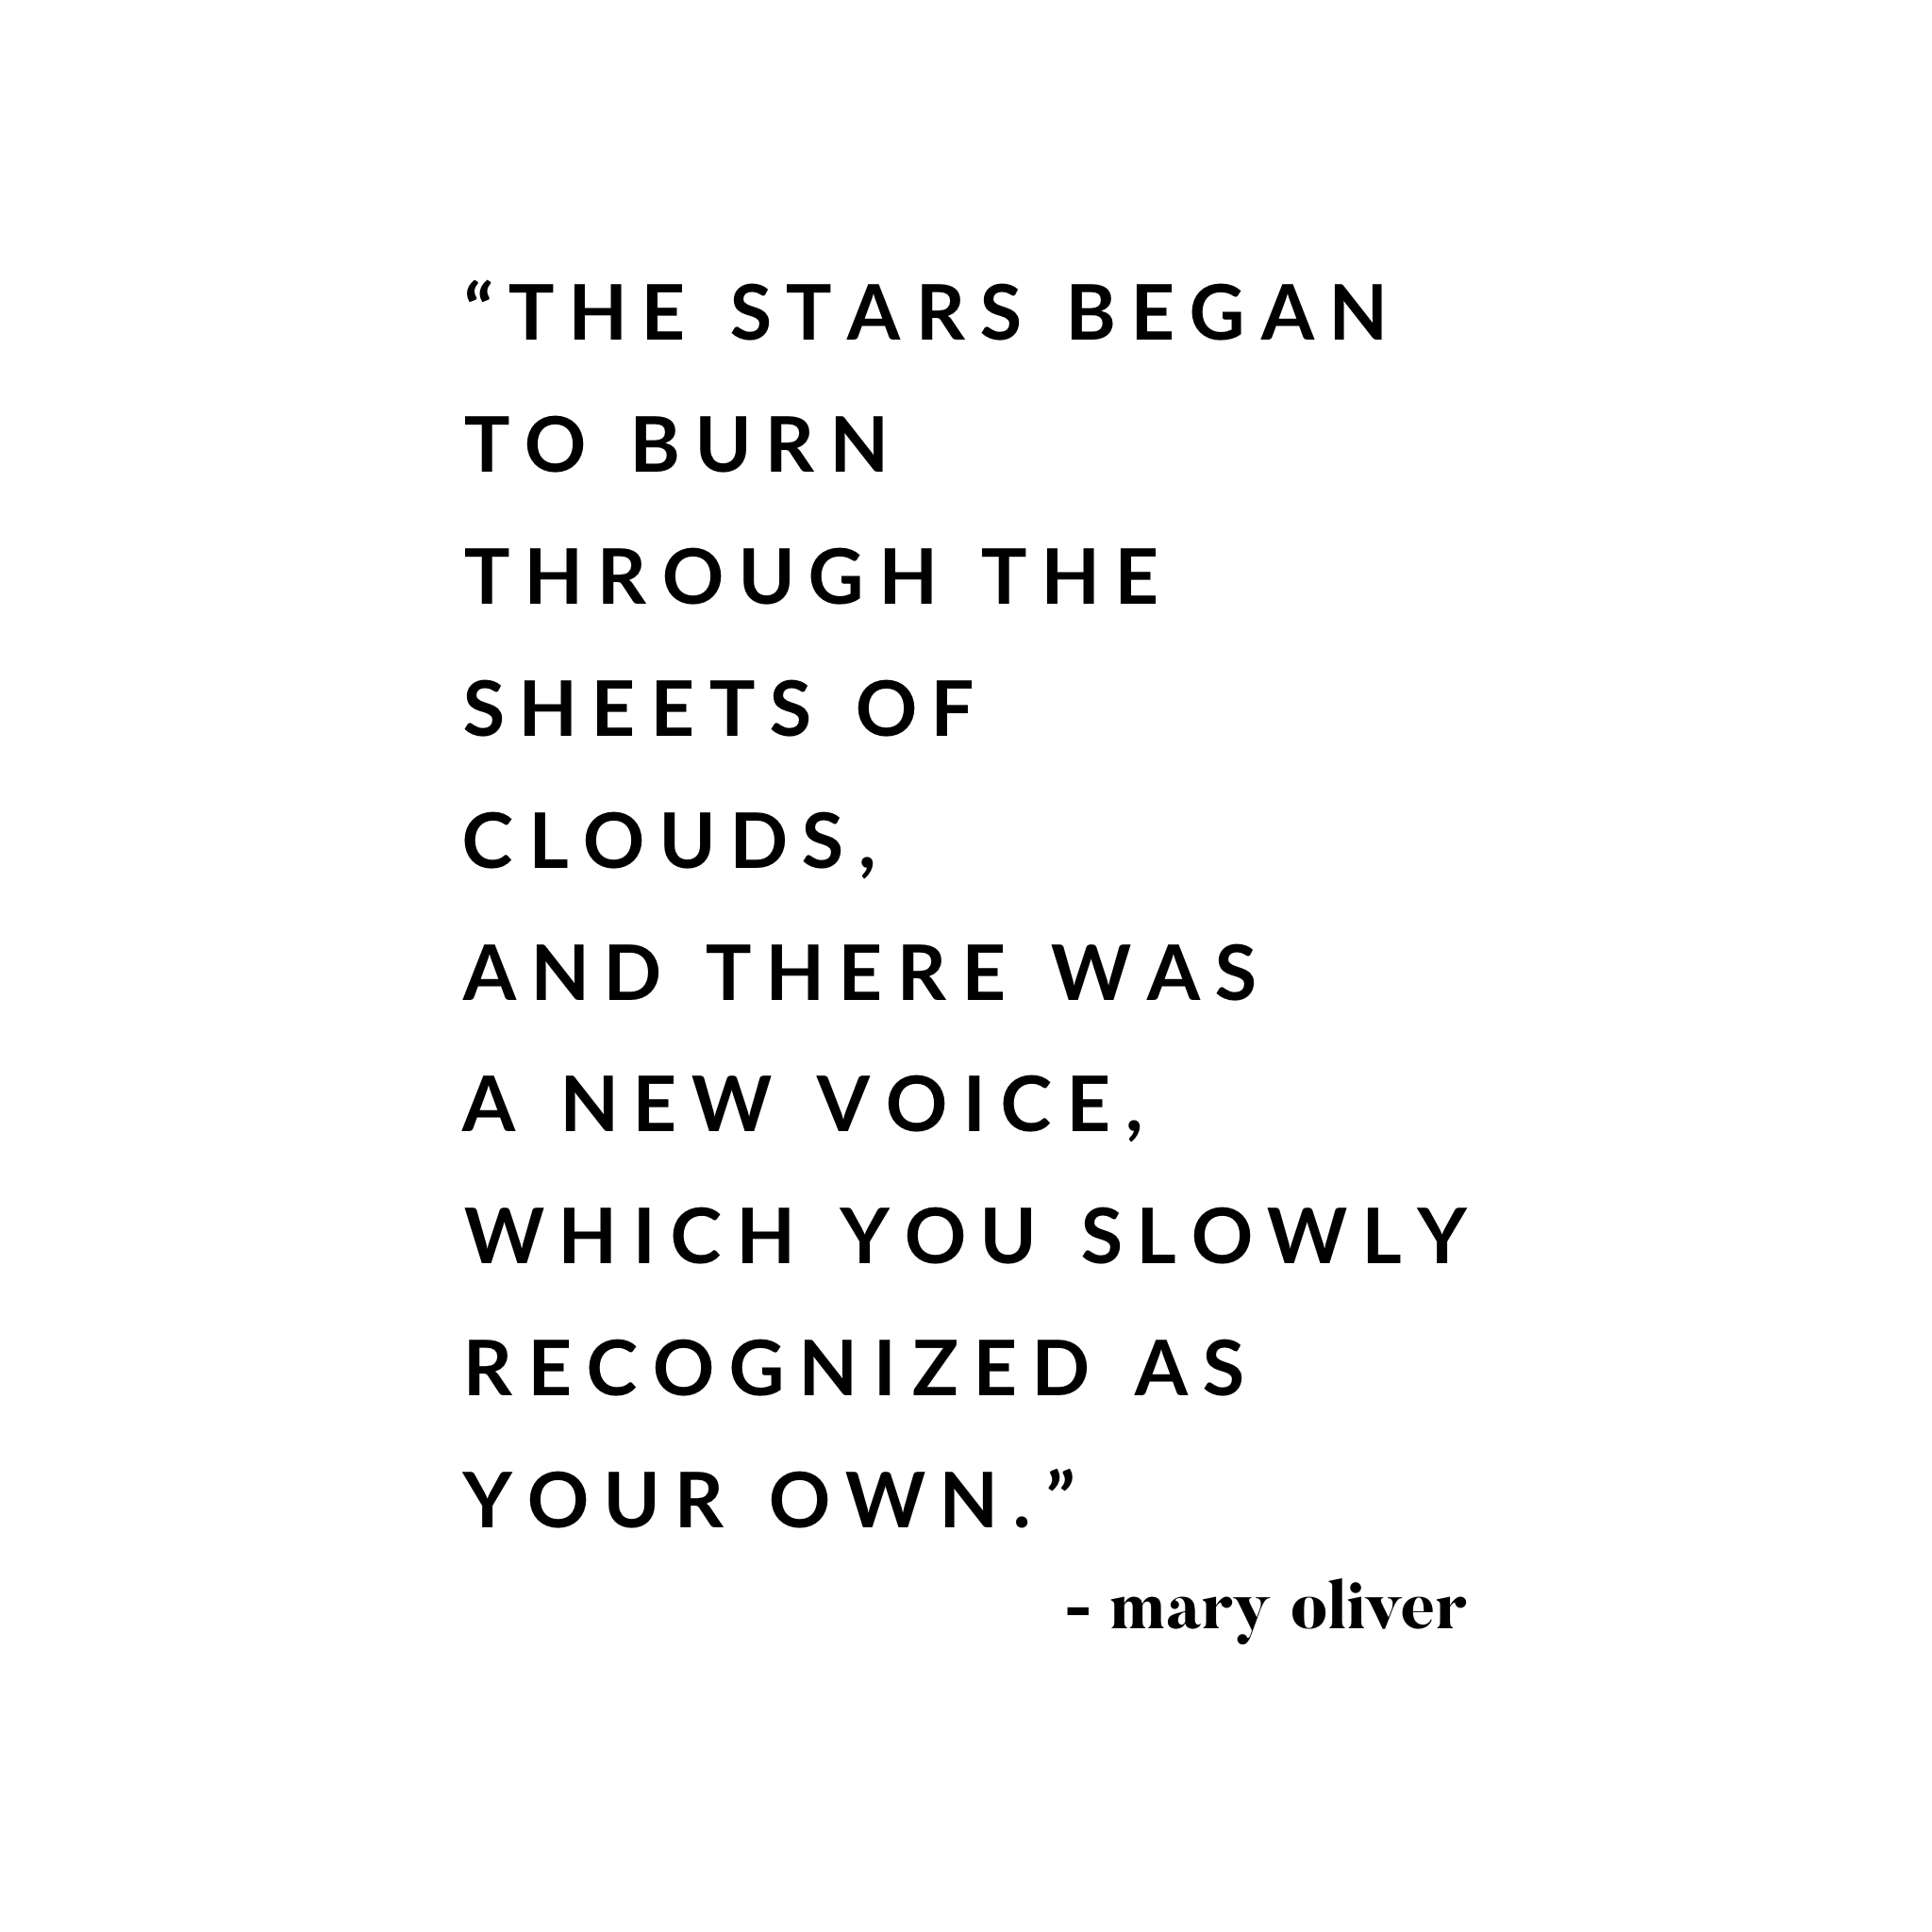 mary-oliver-quote.PNG